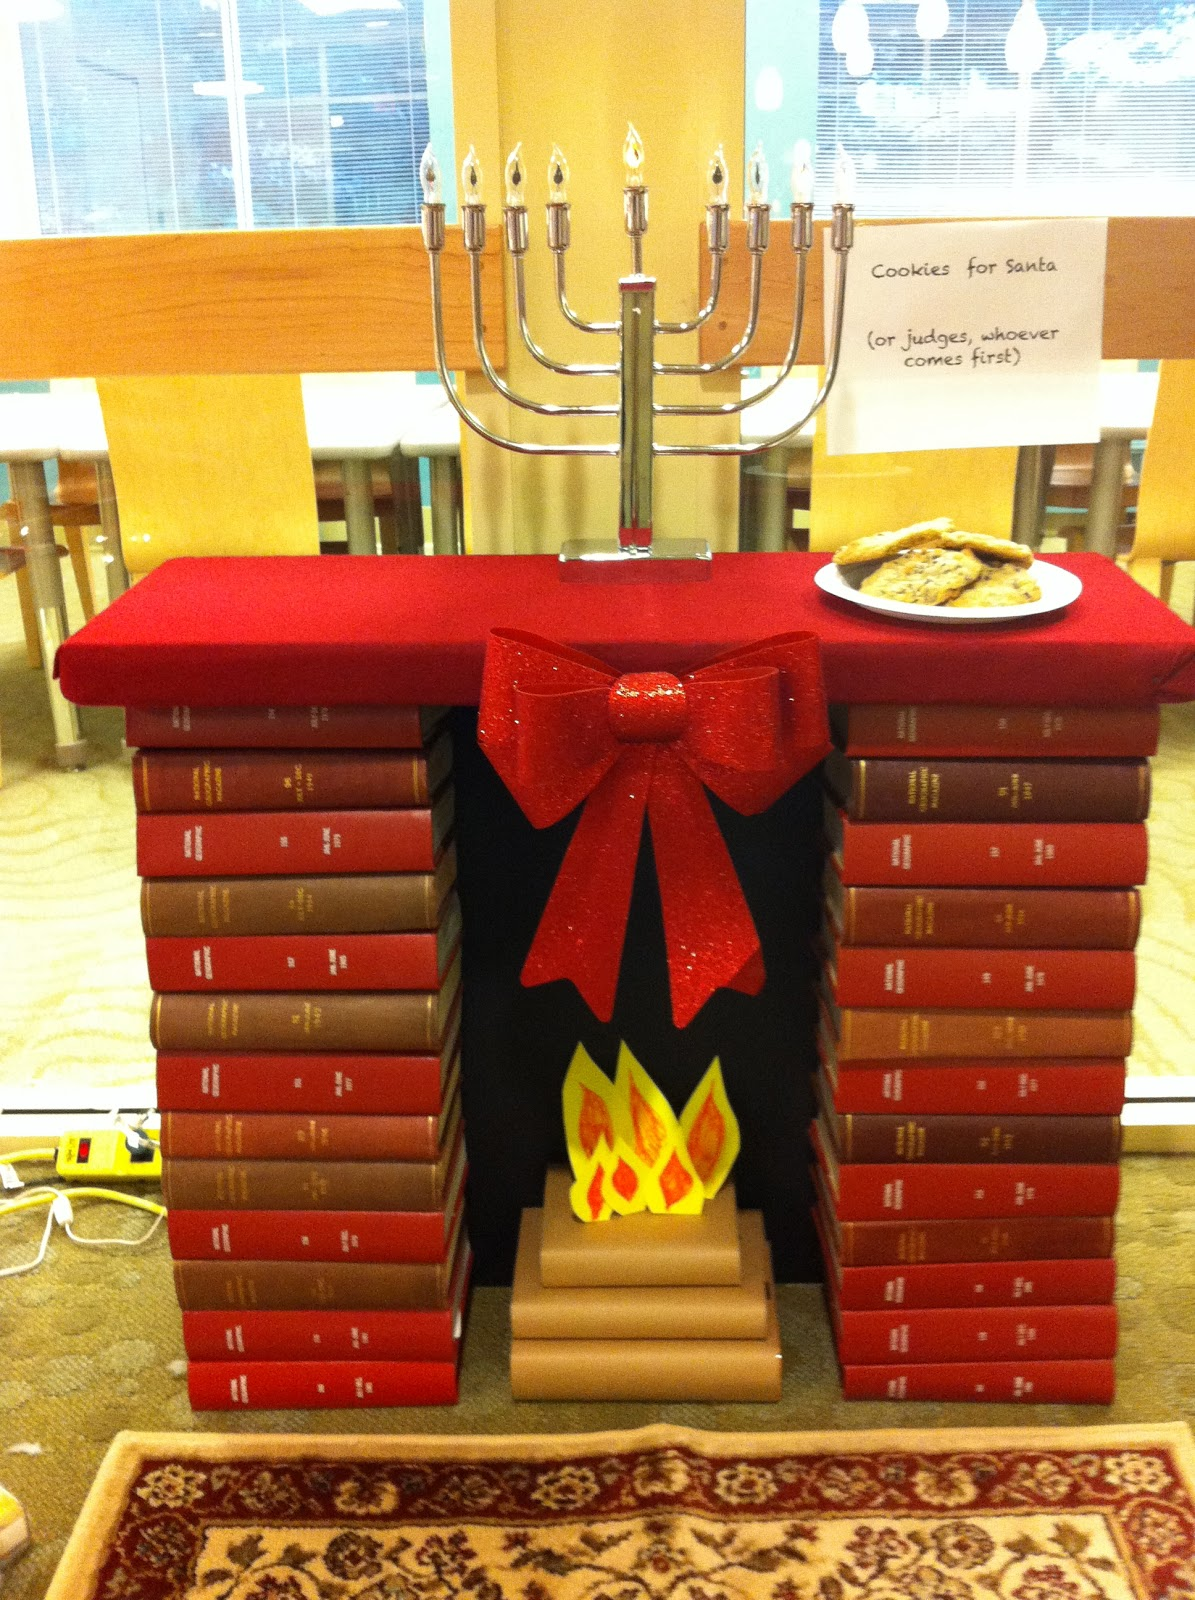 Celebrating the holidays library style the sassy librarian for Art book decoration ideas